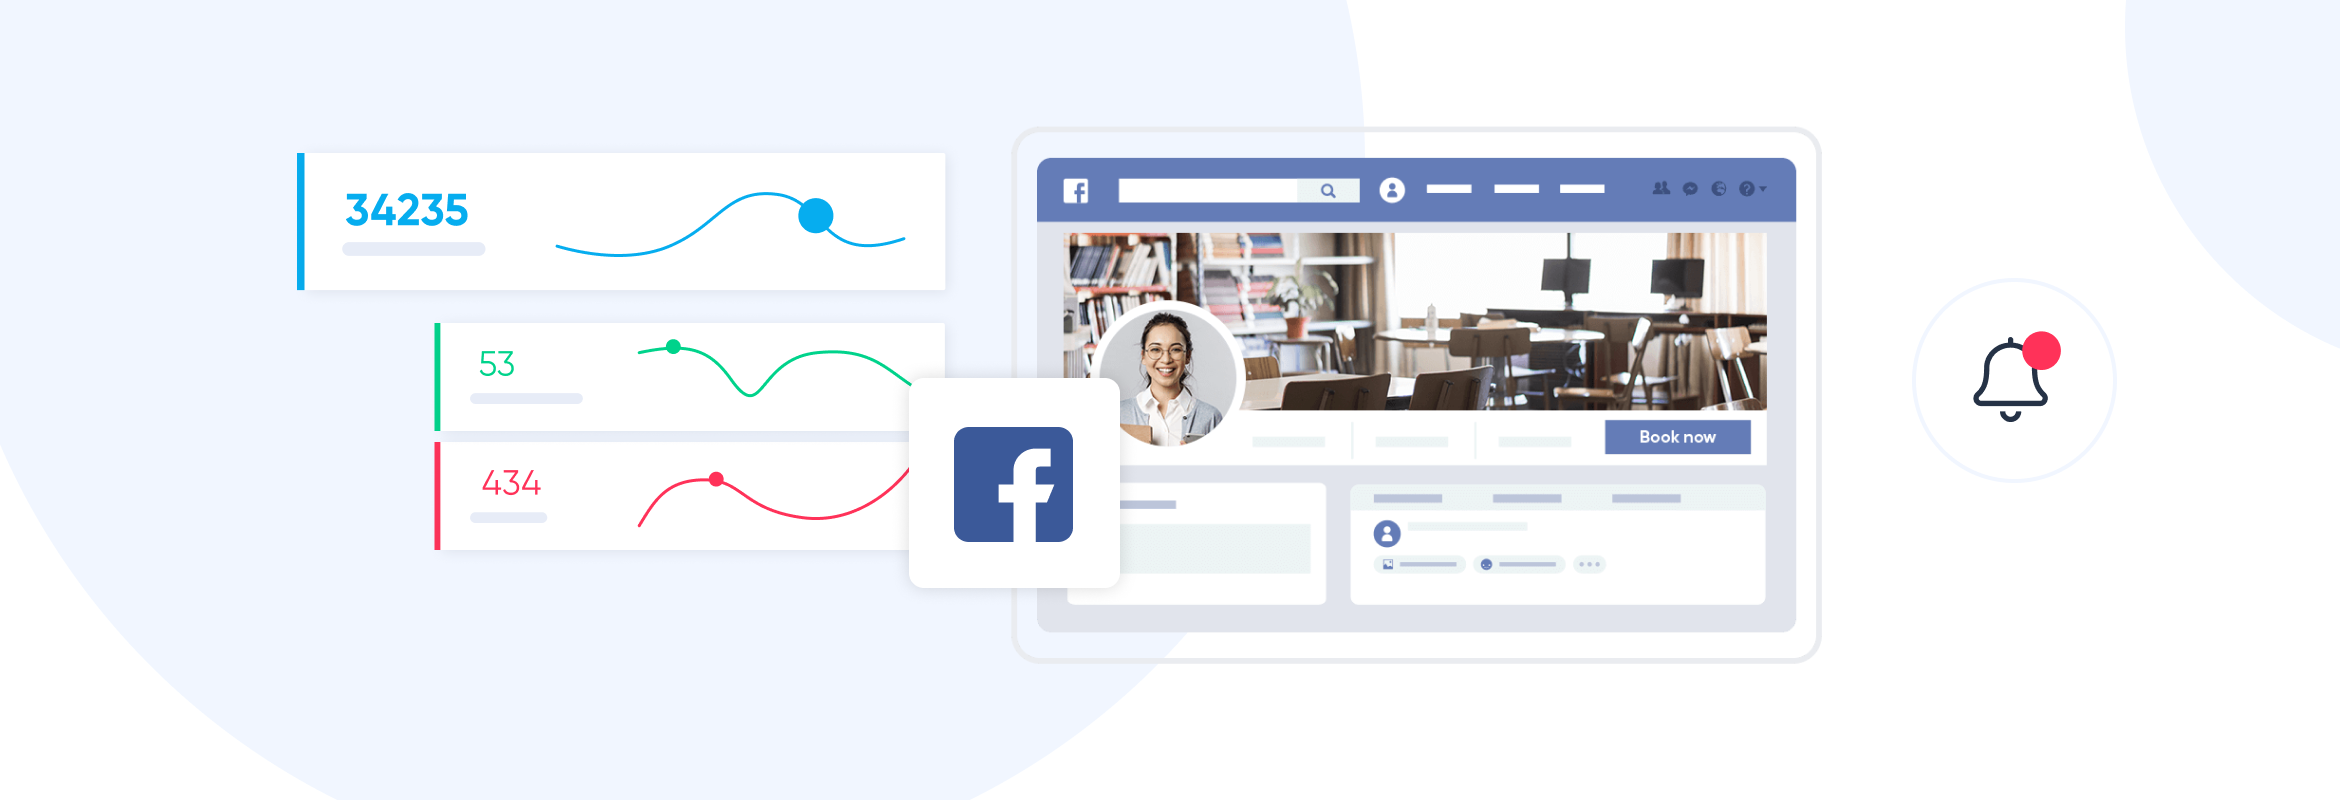 Facebook business page posting